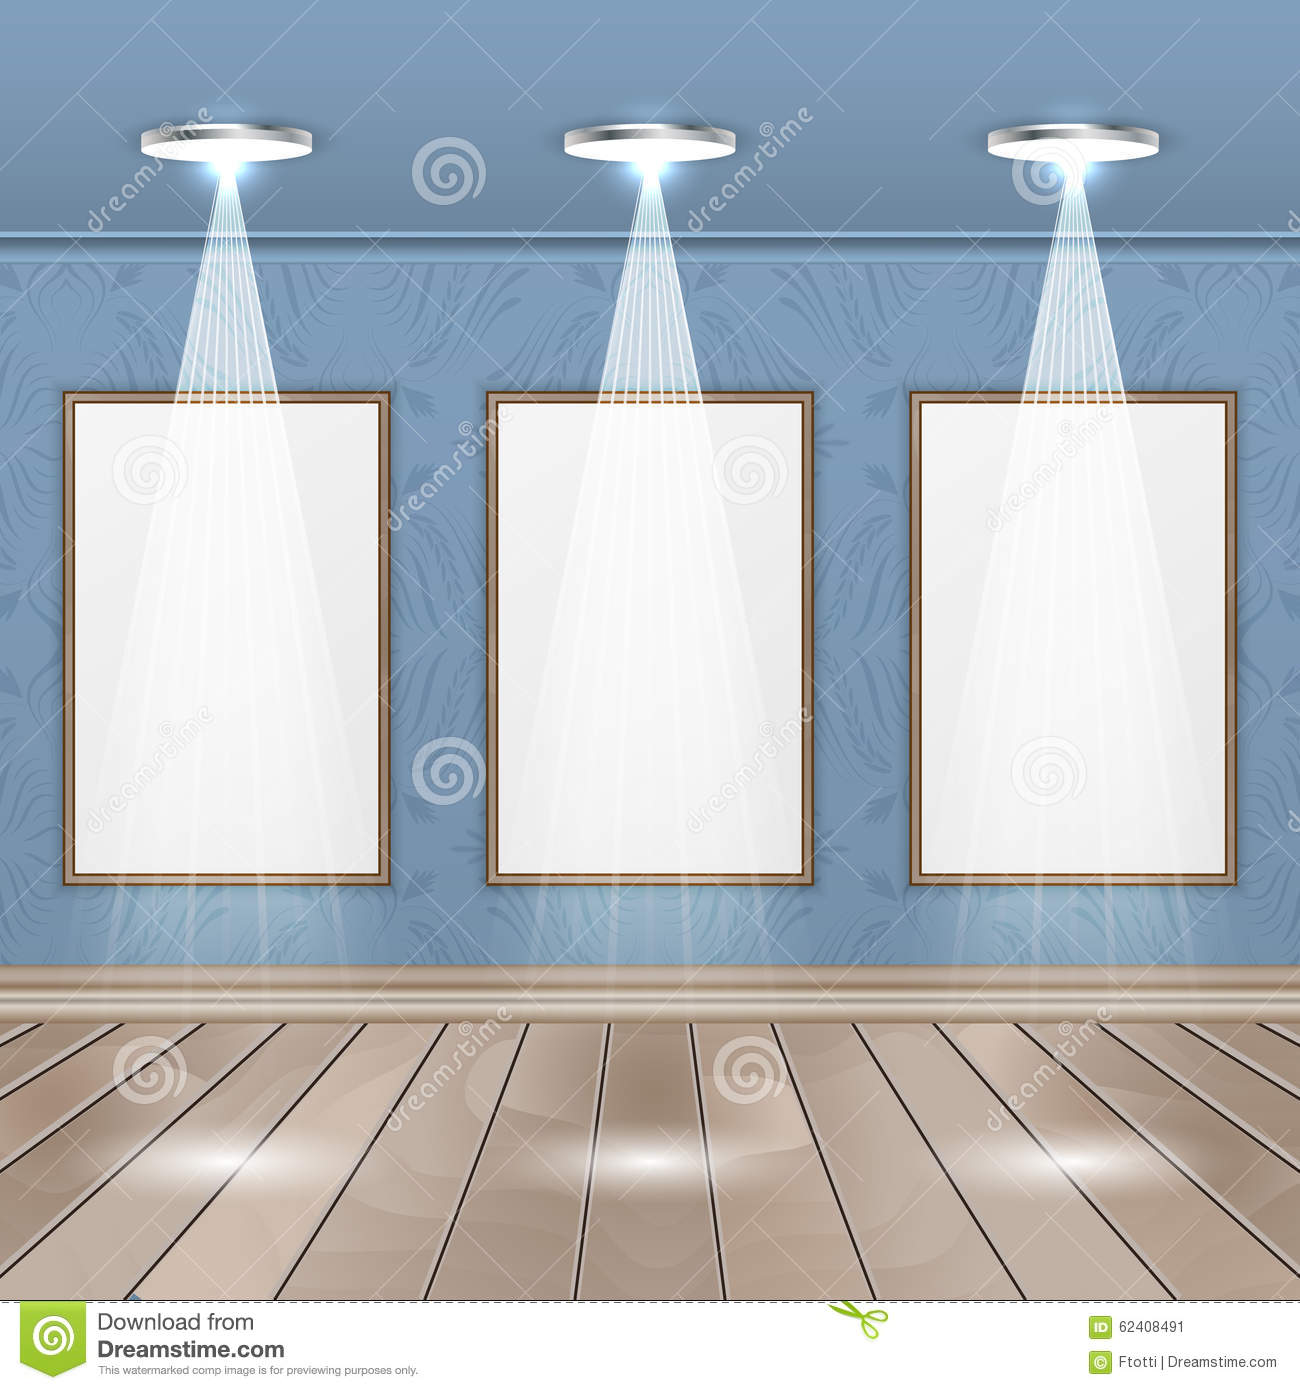 Interior Rooms With Wooden Floor Image Spotlights And